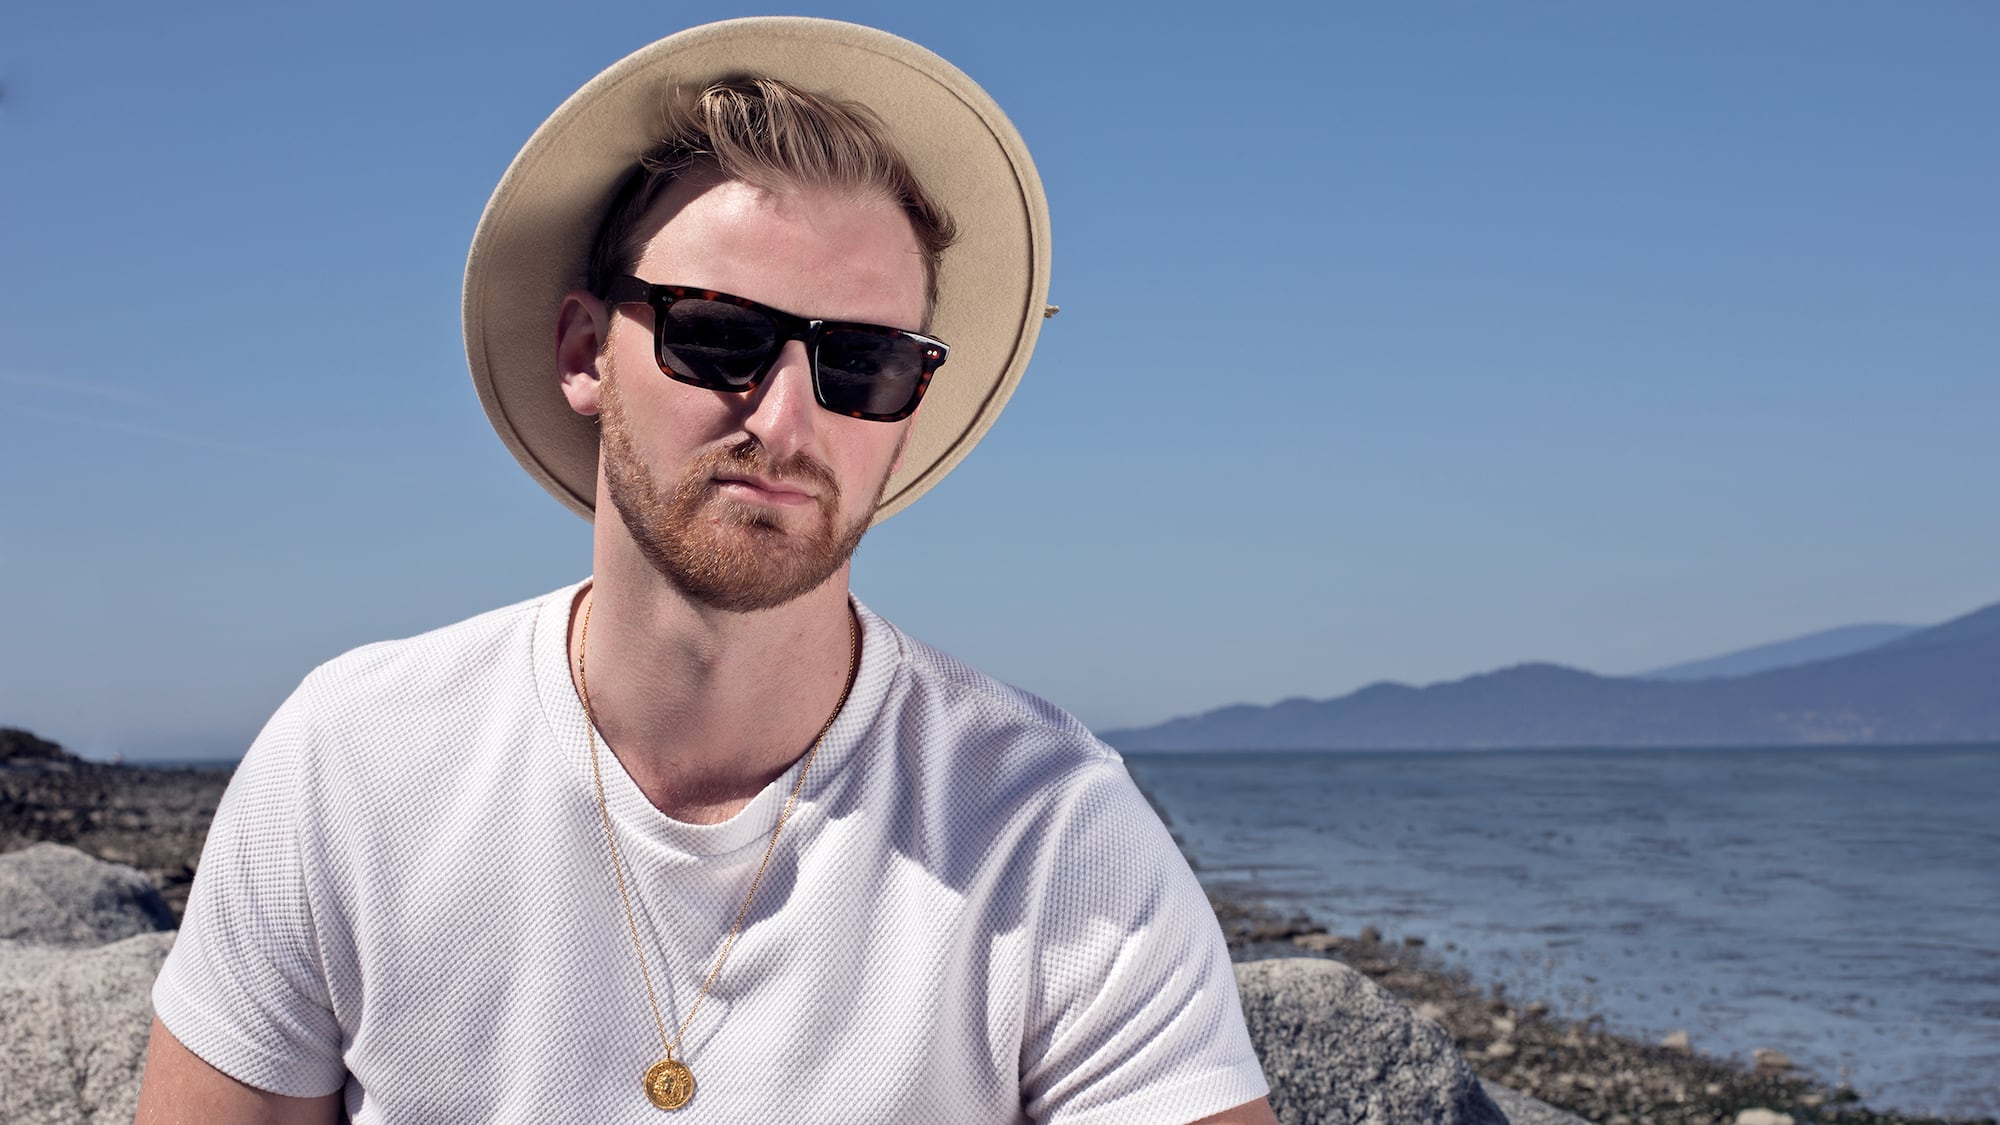 TURTL Eco-Friendly Sunglasses redefine the possibilities of plant-based materials